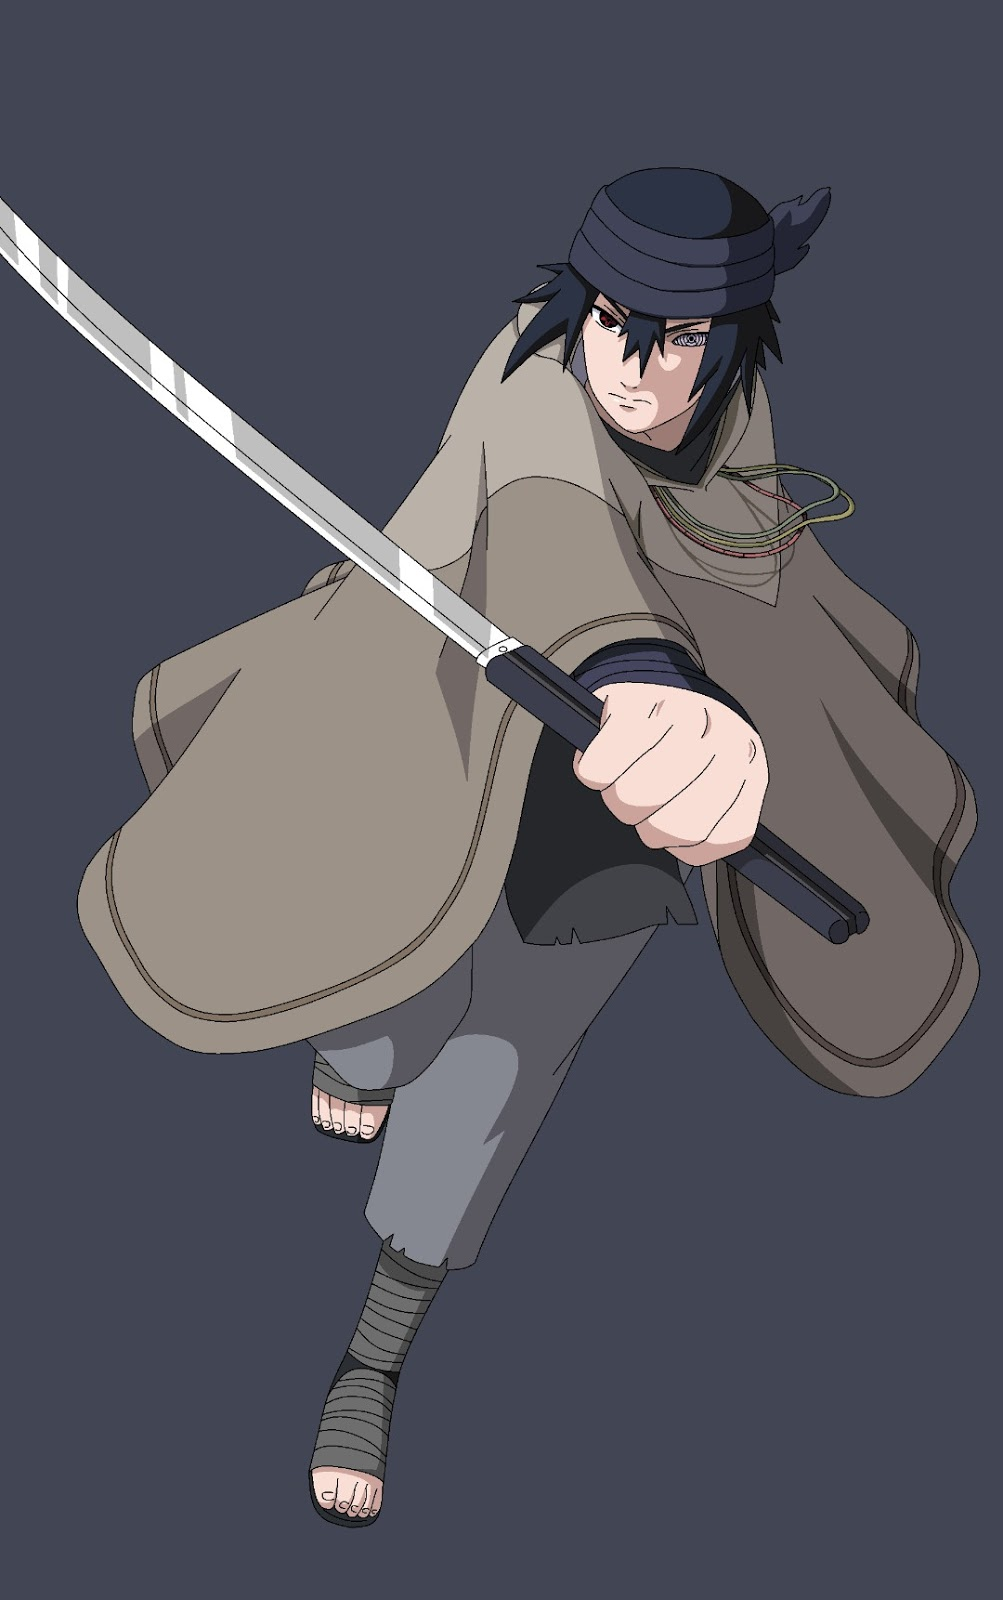 18. Download wallpaper uchiha sasuke vektor untuk android dan whatsApp chat